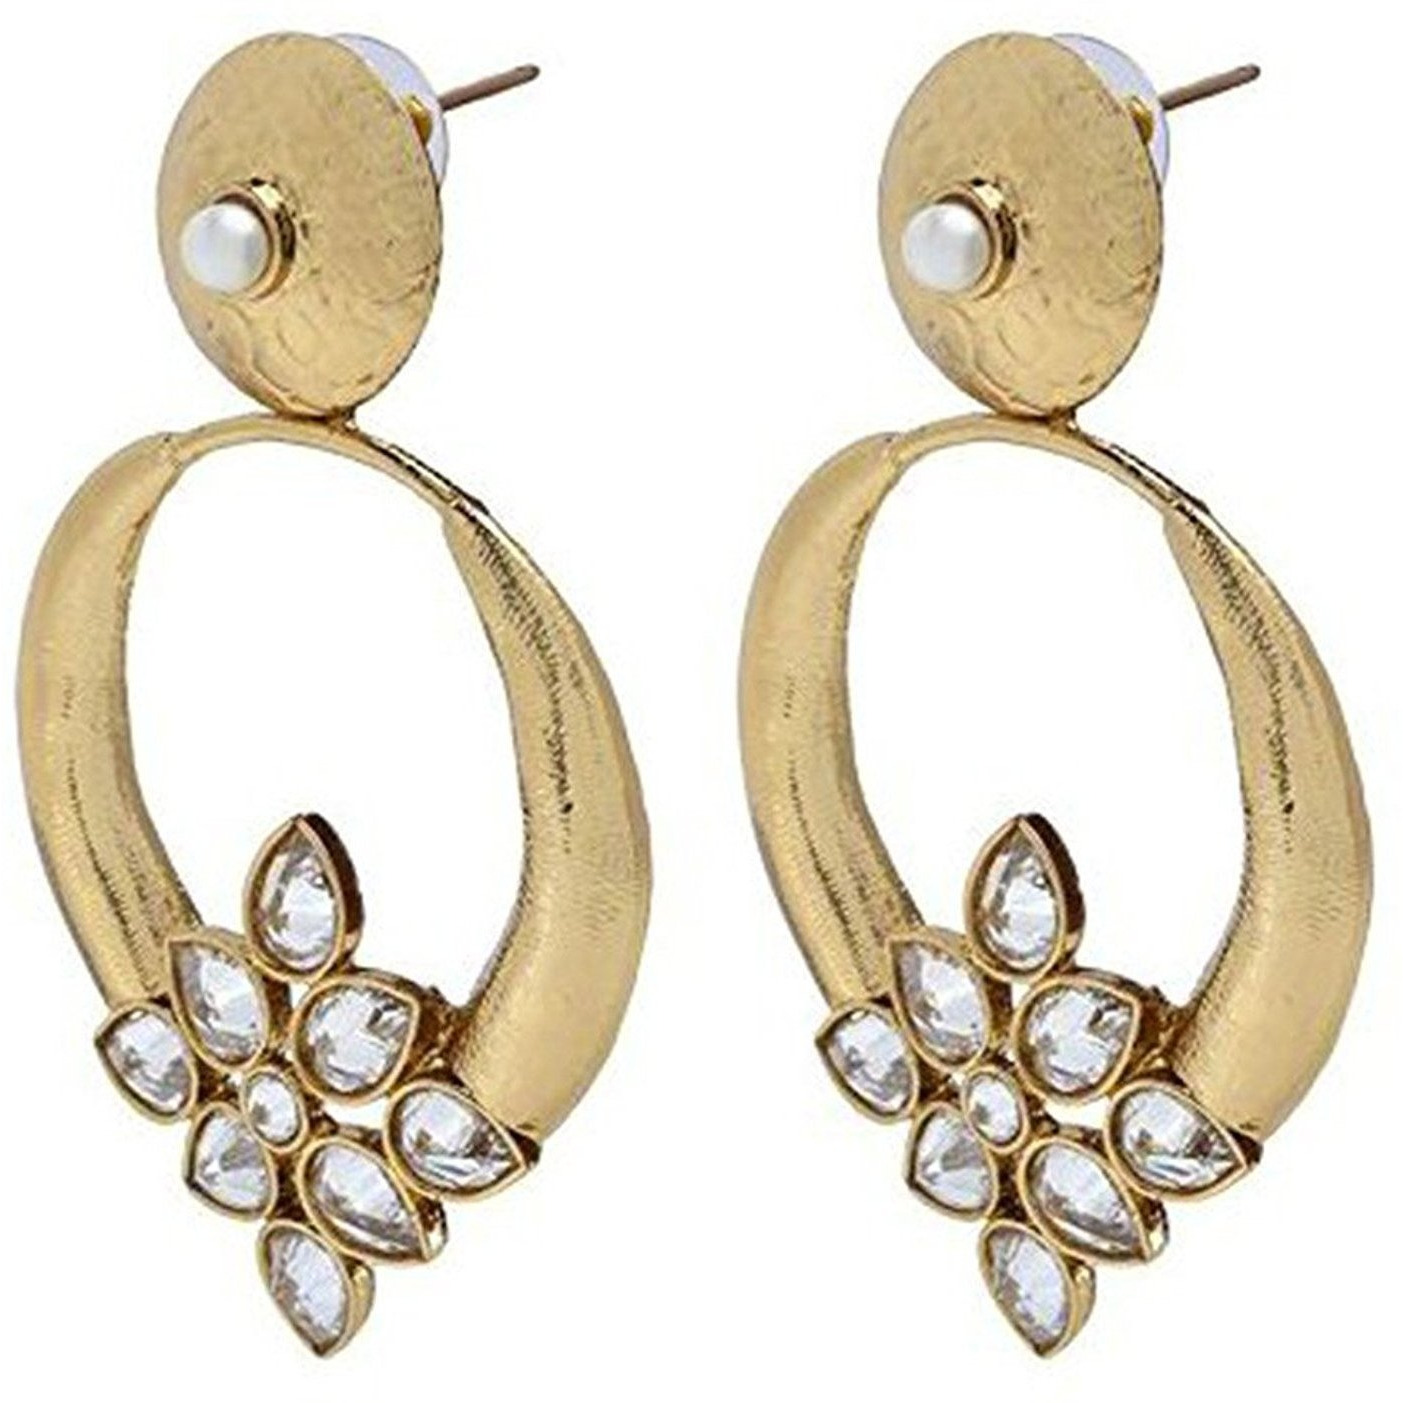 Zivom Turkish Kundan Polki Chaand Bali Gold Plated Long Earring For Women